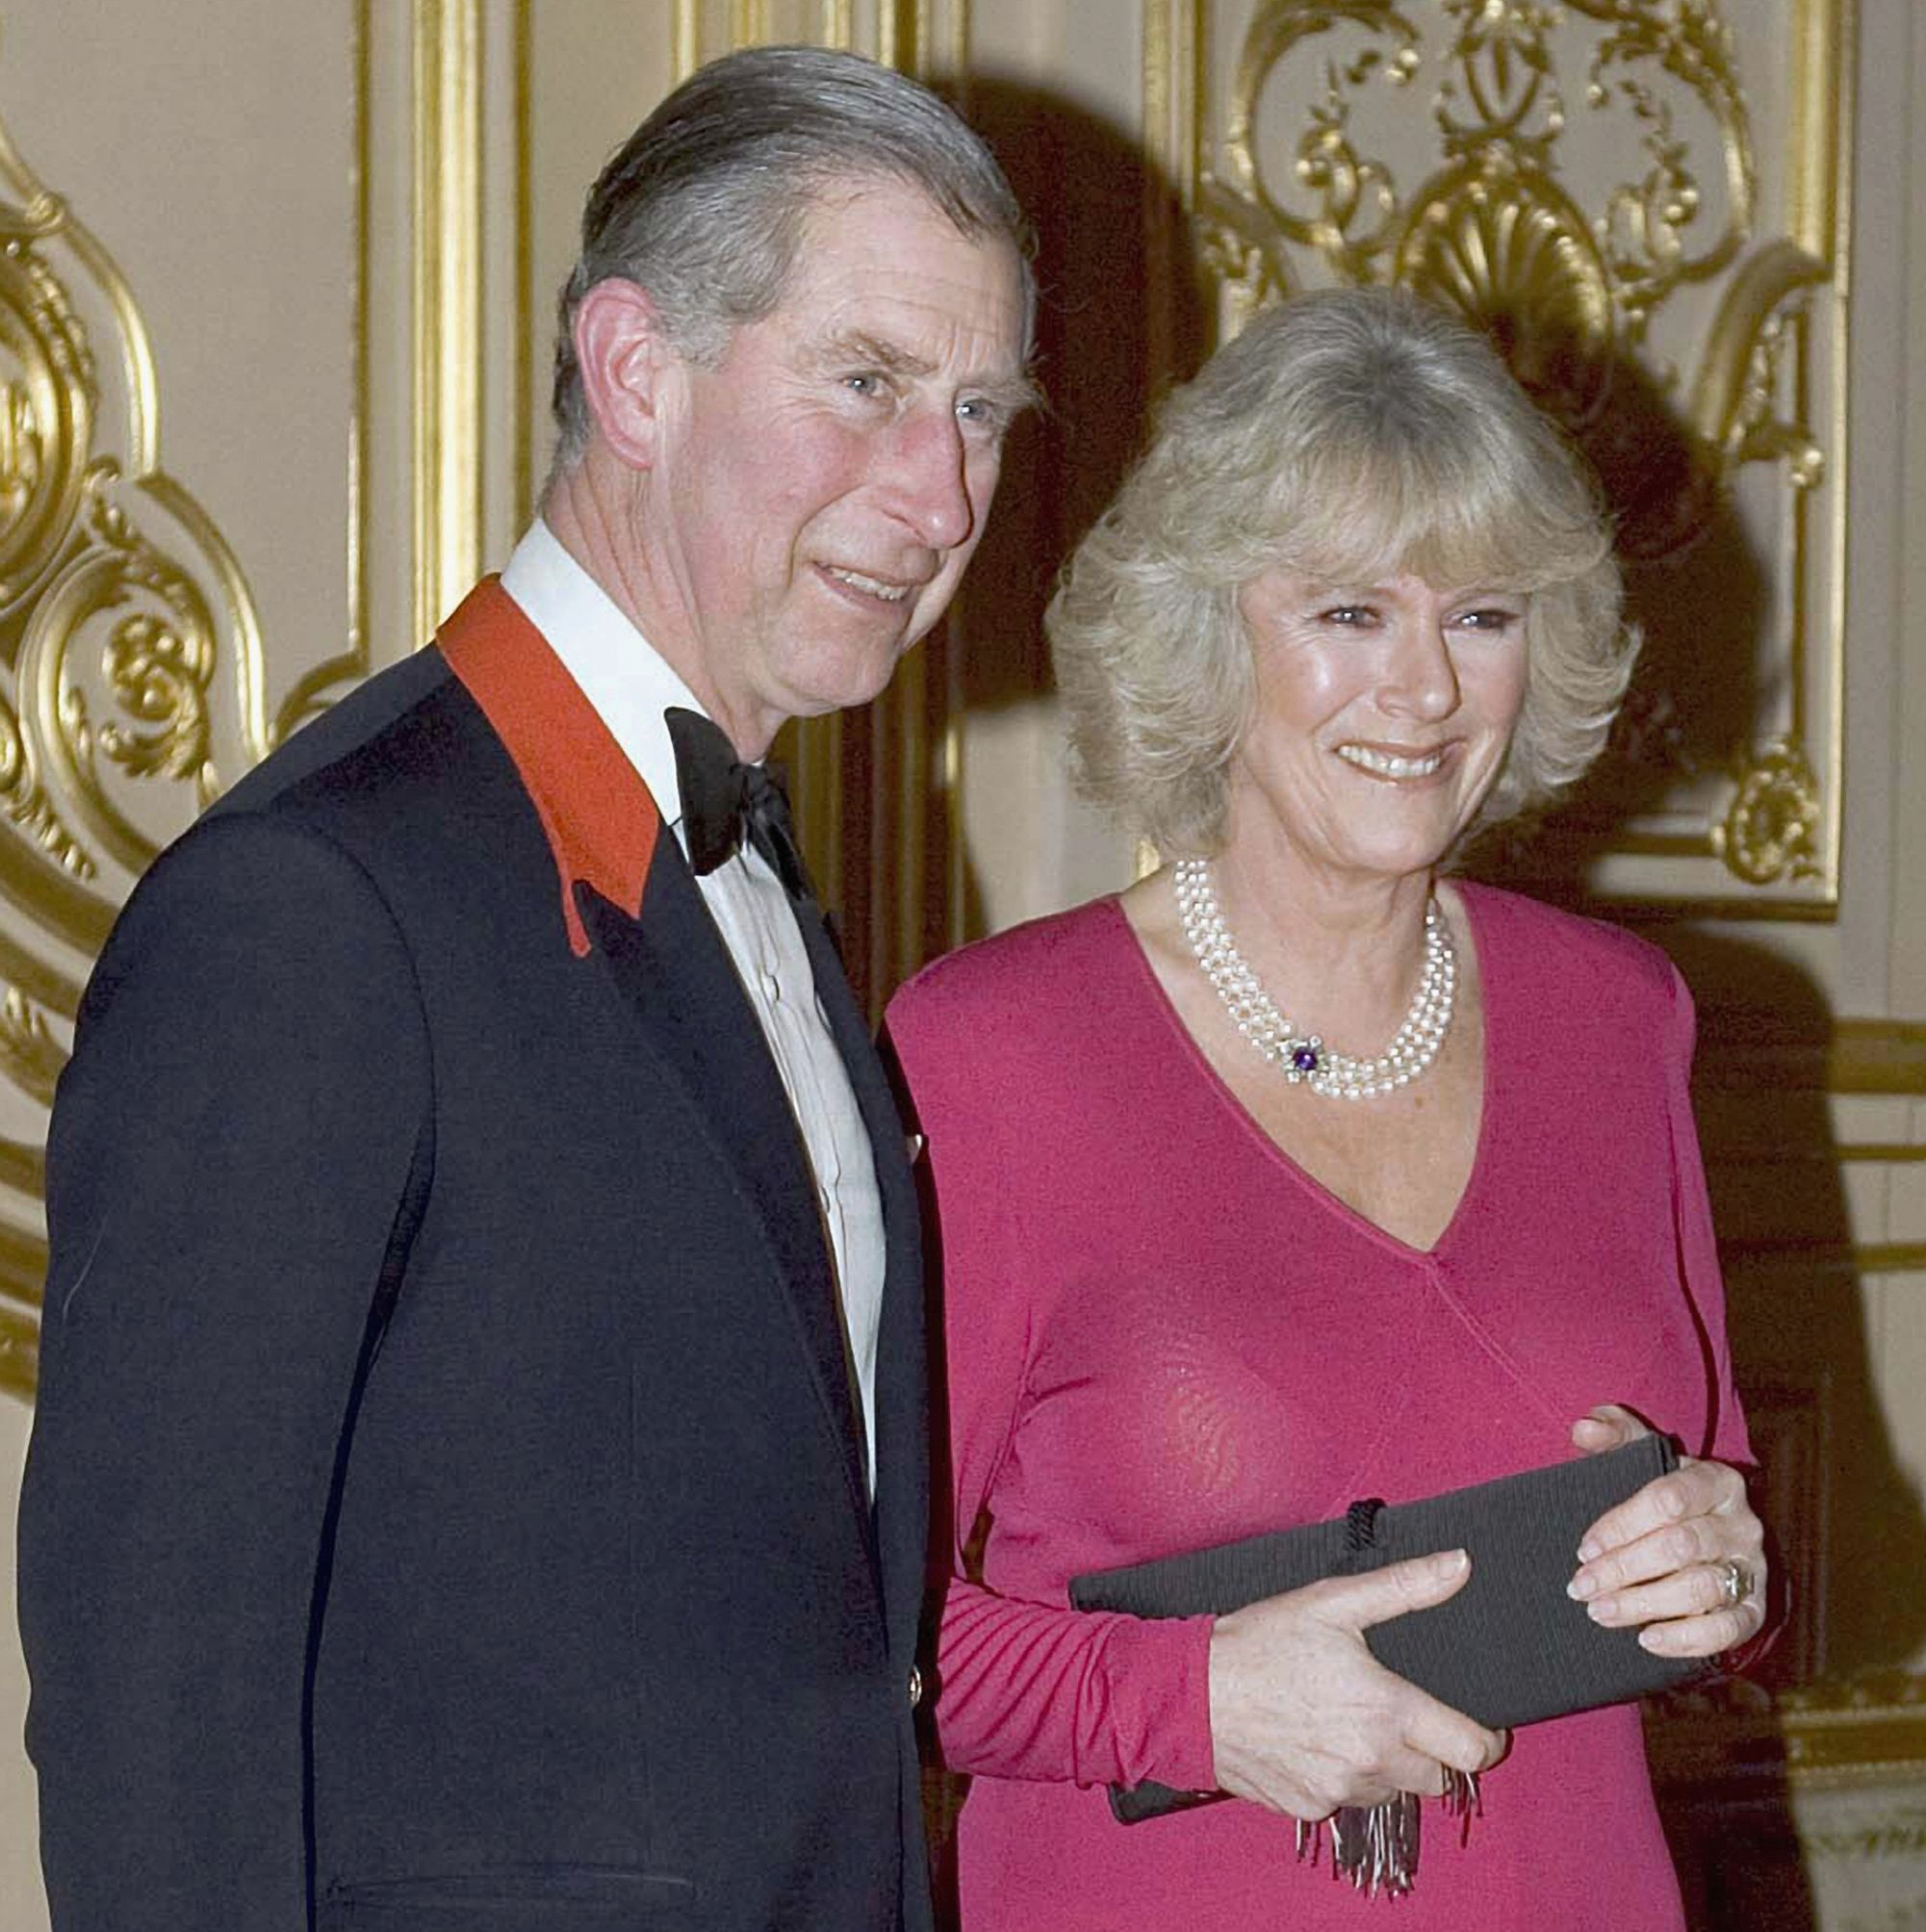 Prince Charles And Camilla Parker-Bowles Announce Intention To Marry